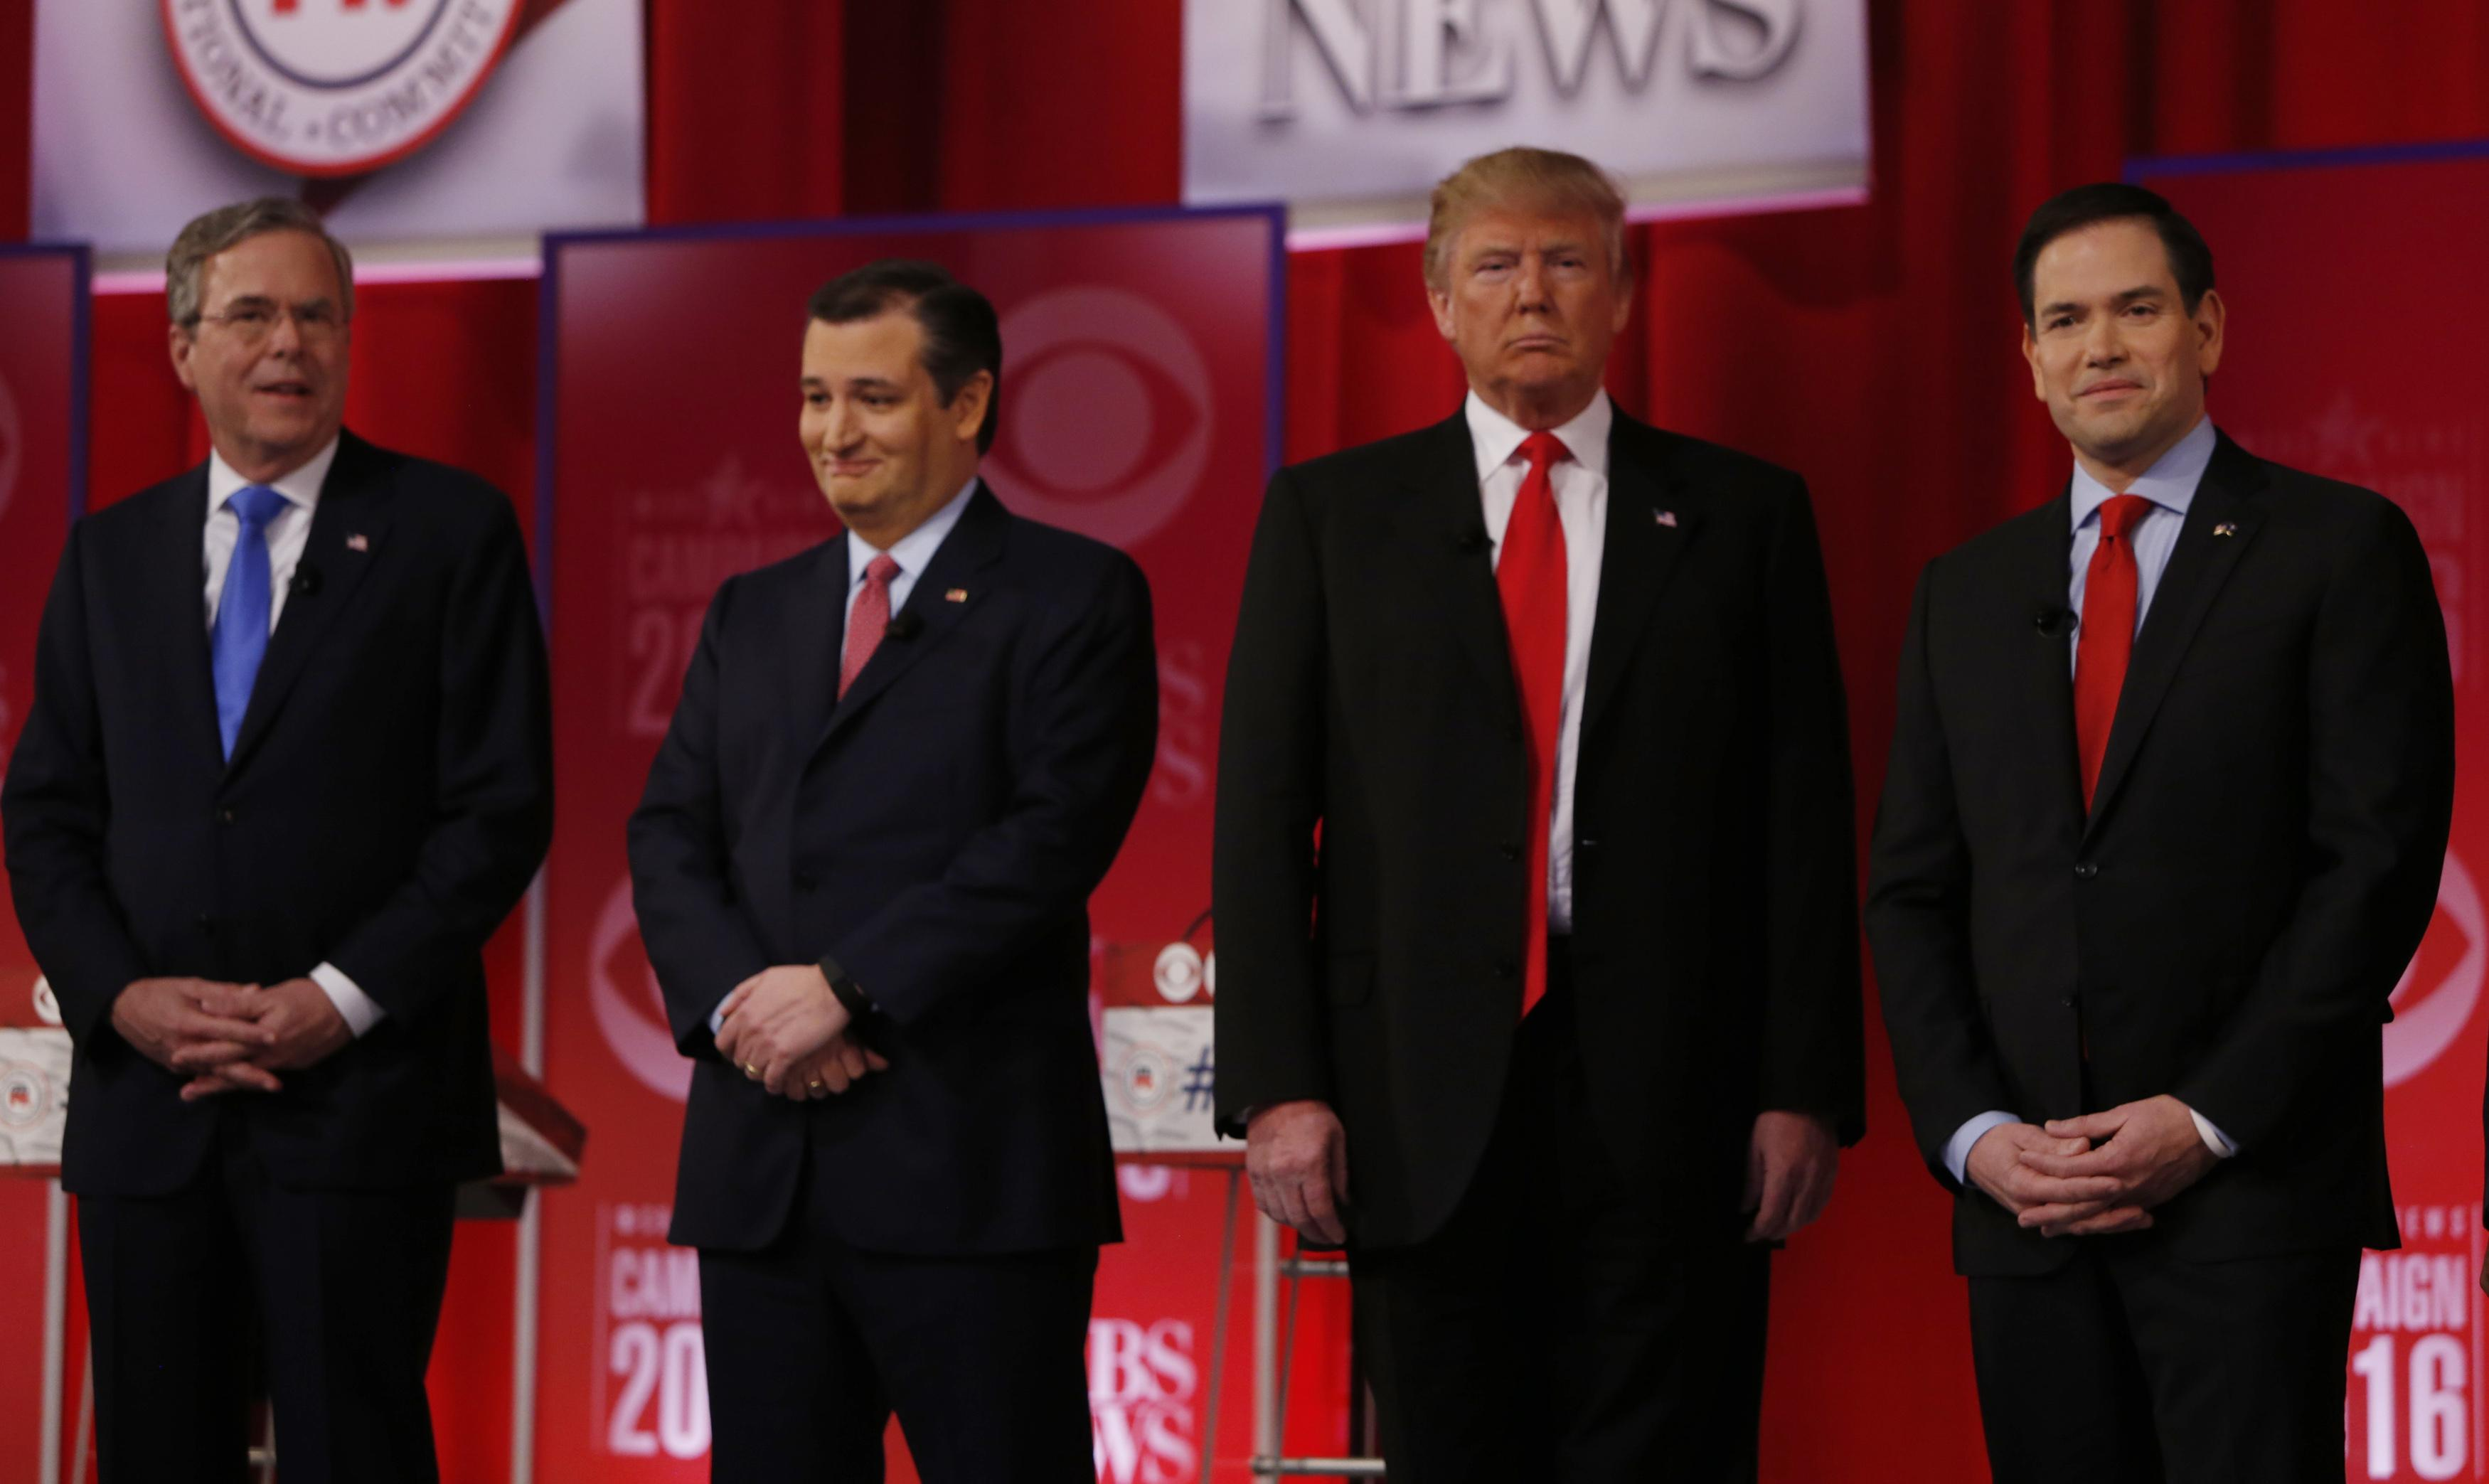 CBS Republican Debate Highlights 2016: Best Video Clips ...